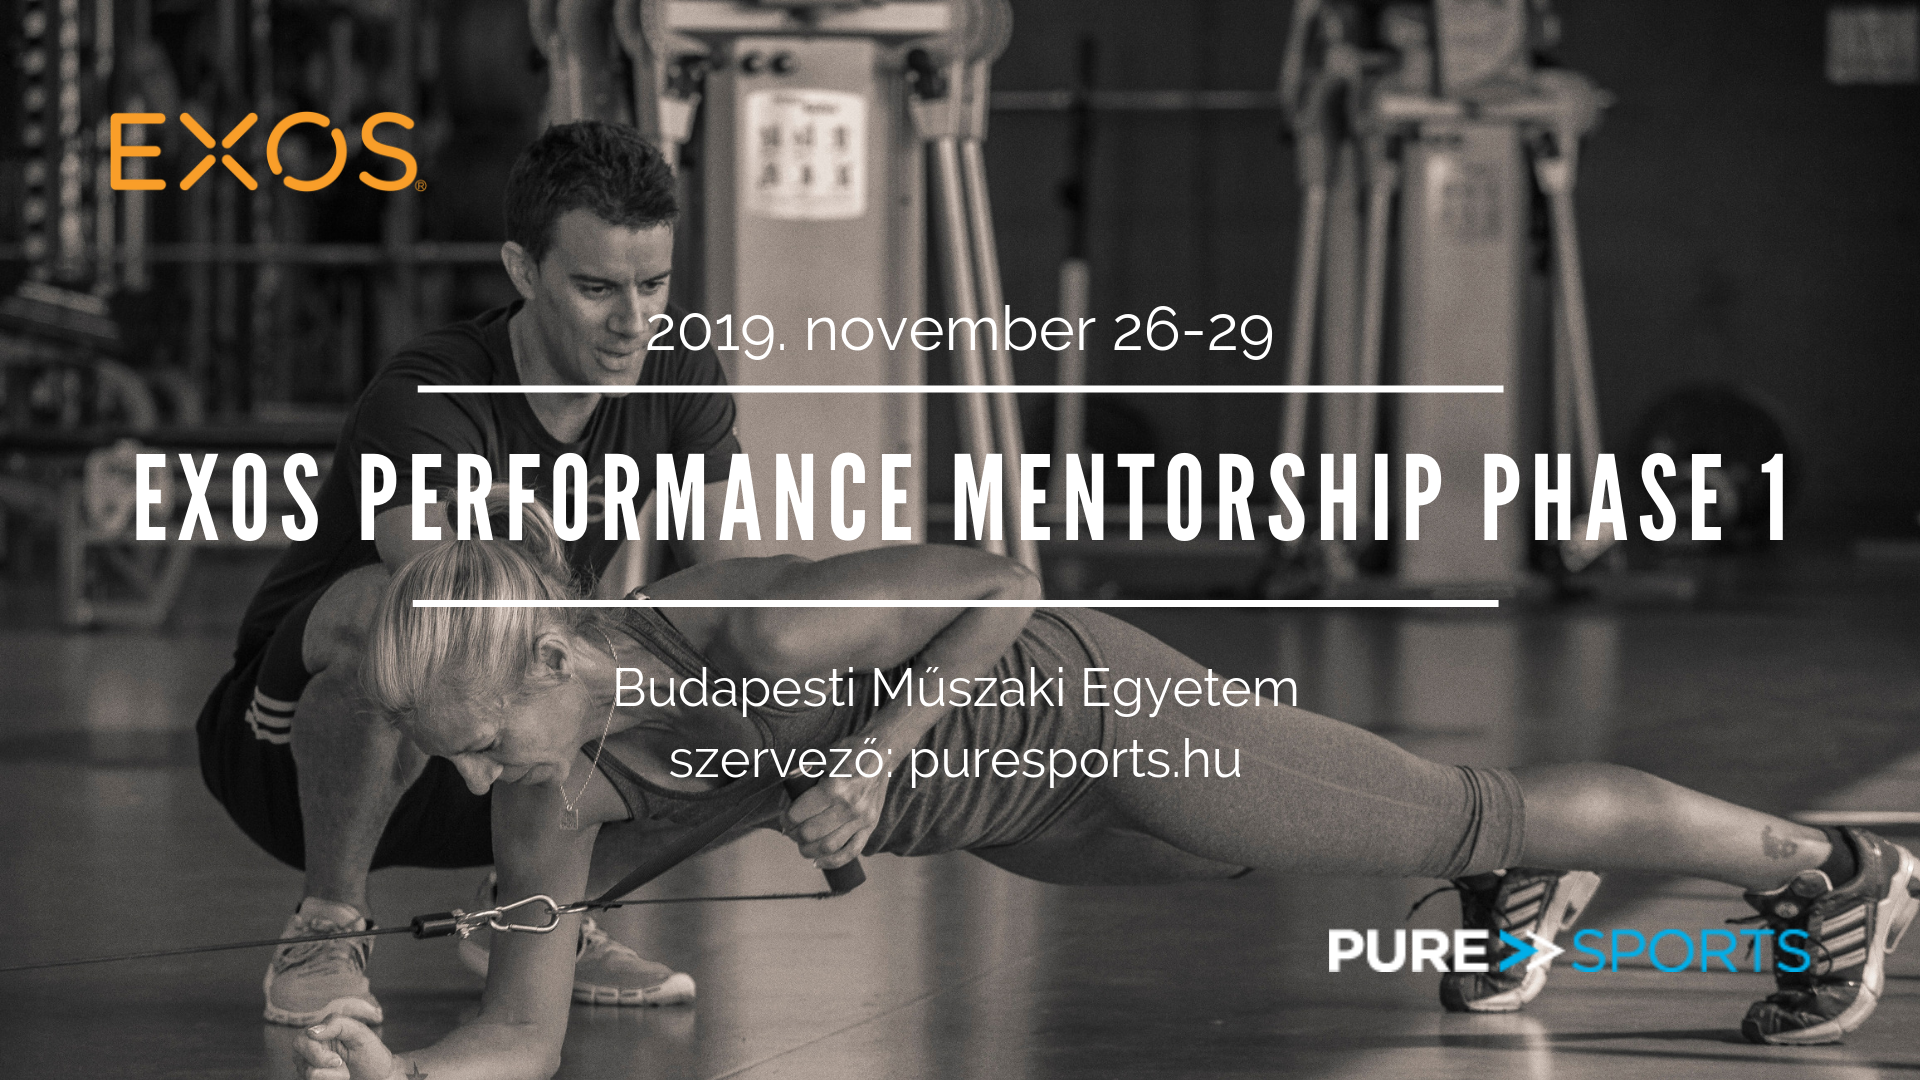 Exos performance mentorship phase 1